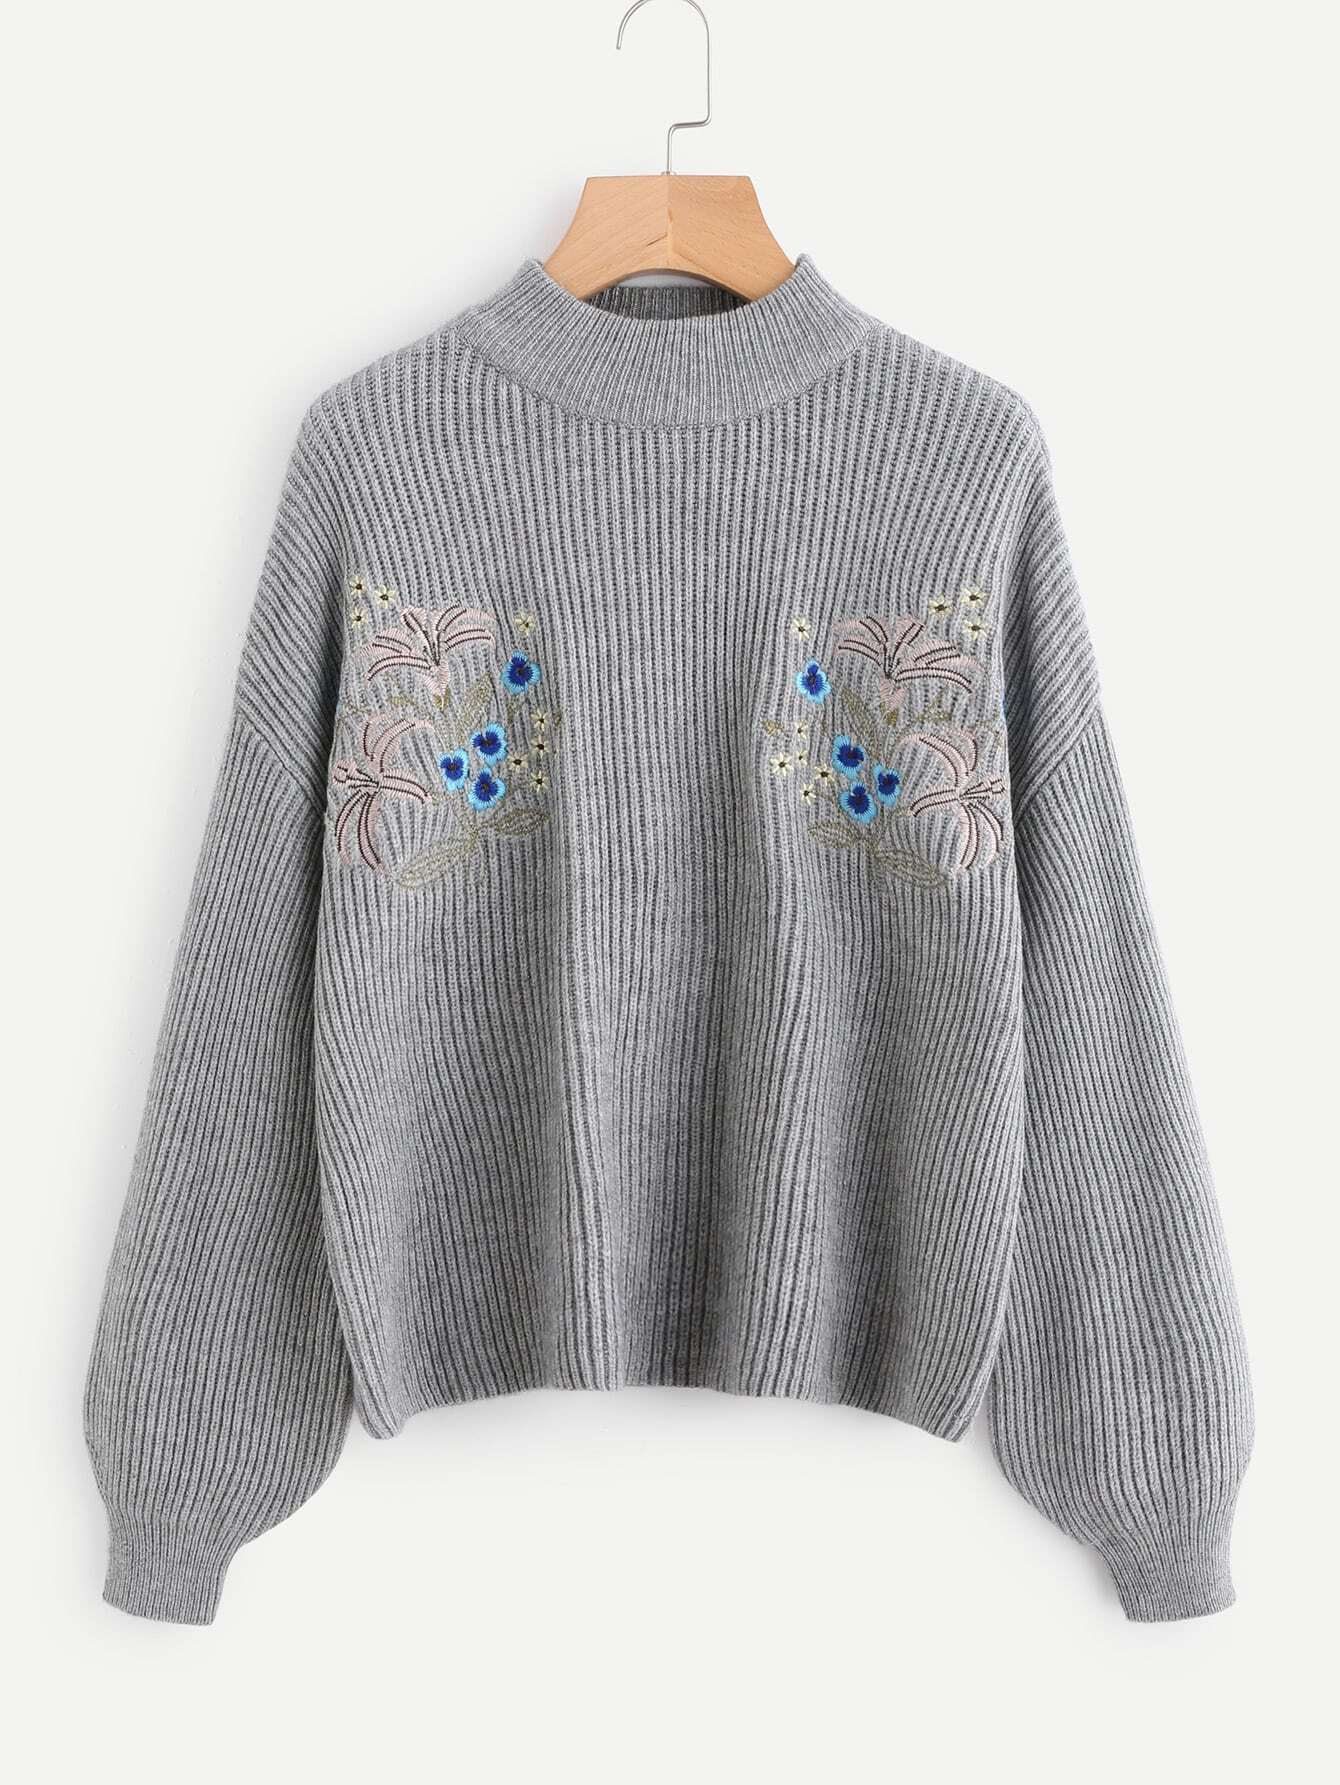 Symmetrical Embroidered Front Dropped Shoulder Ribbed Knit Jumper sweater170928455